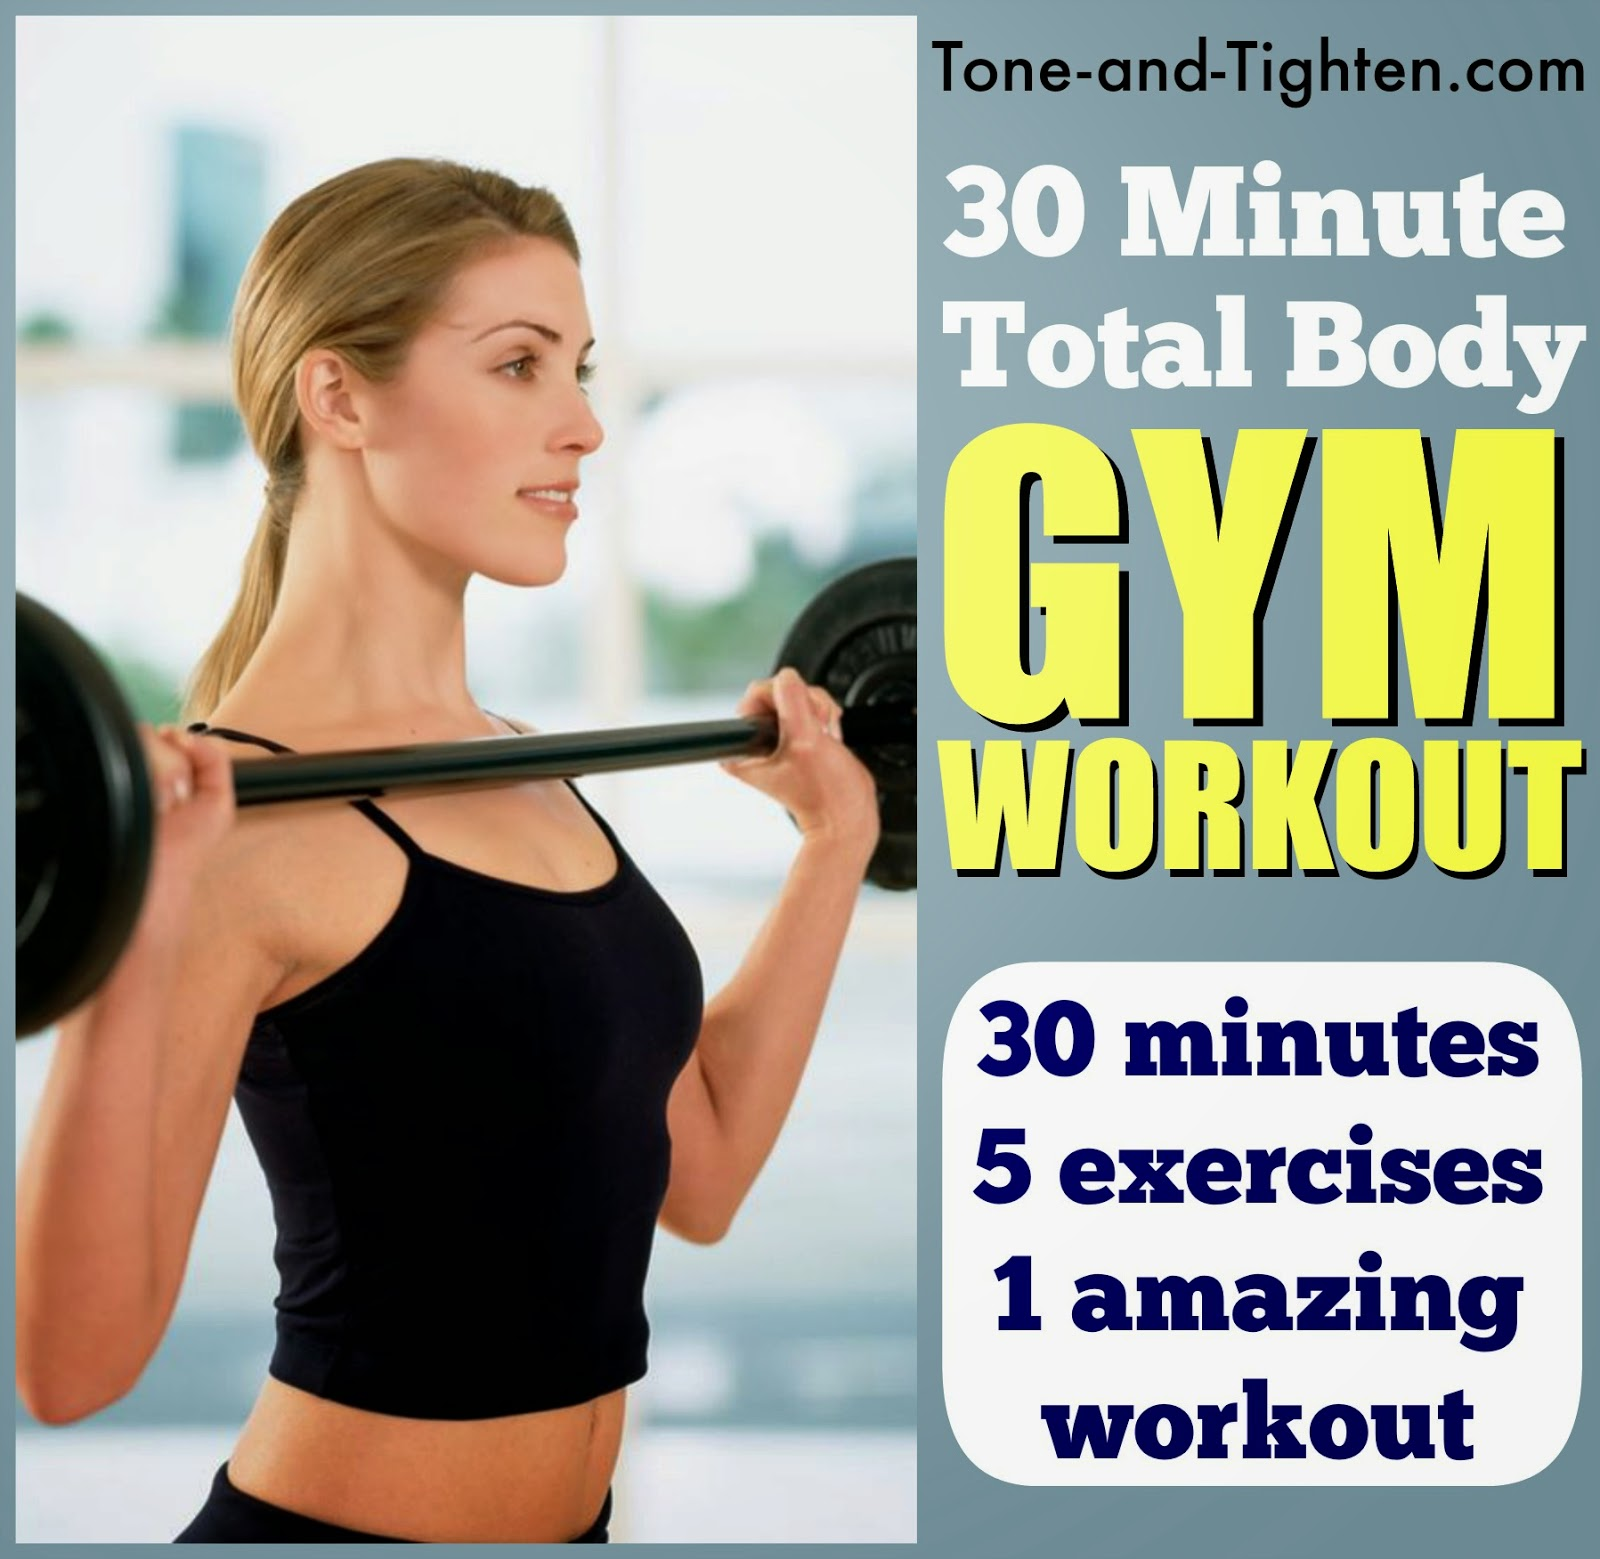 https://tone-and-tighten.com/2014/04/30-minute-total-body-gym-workout.html